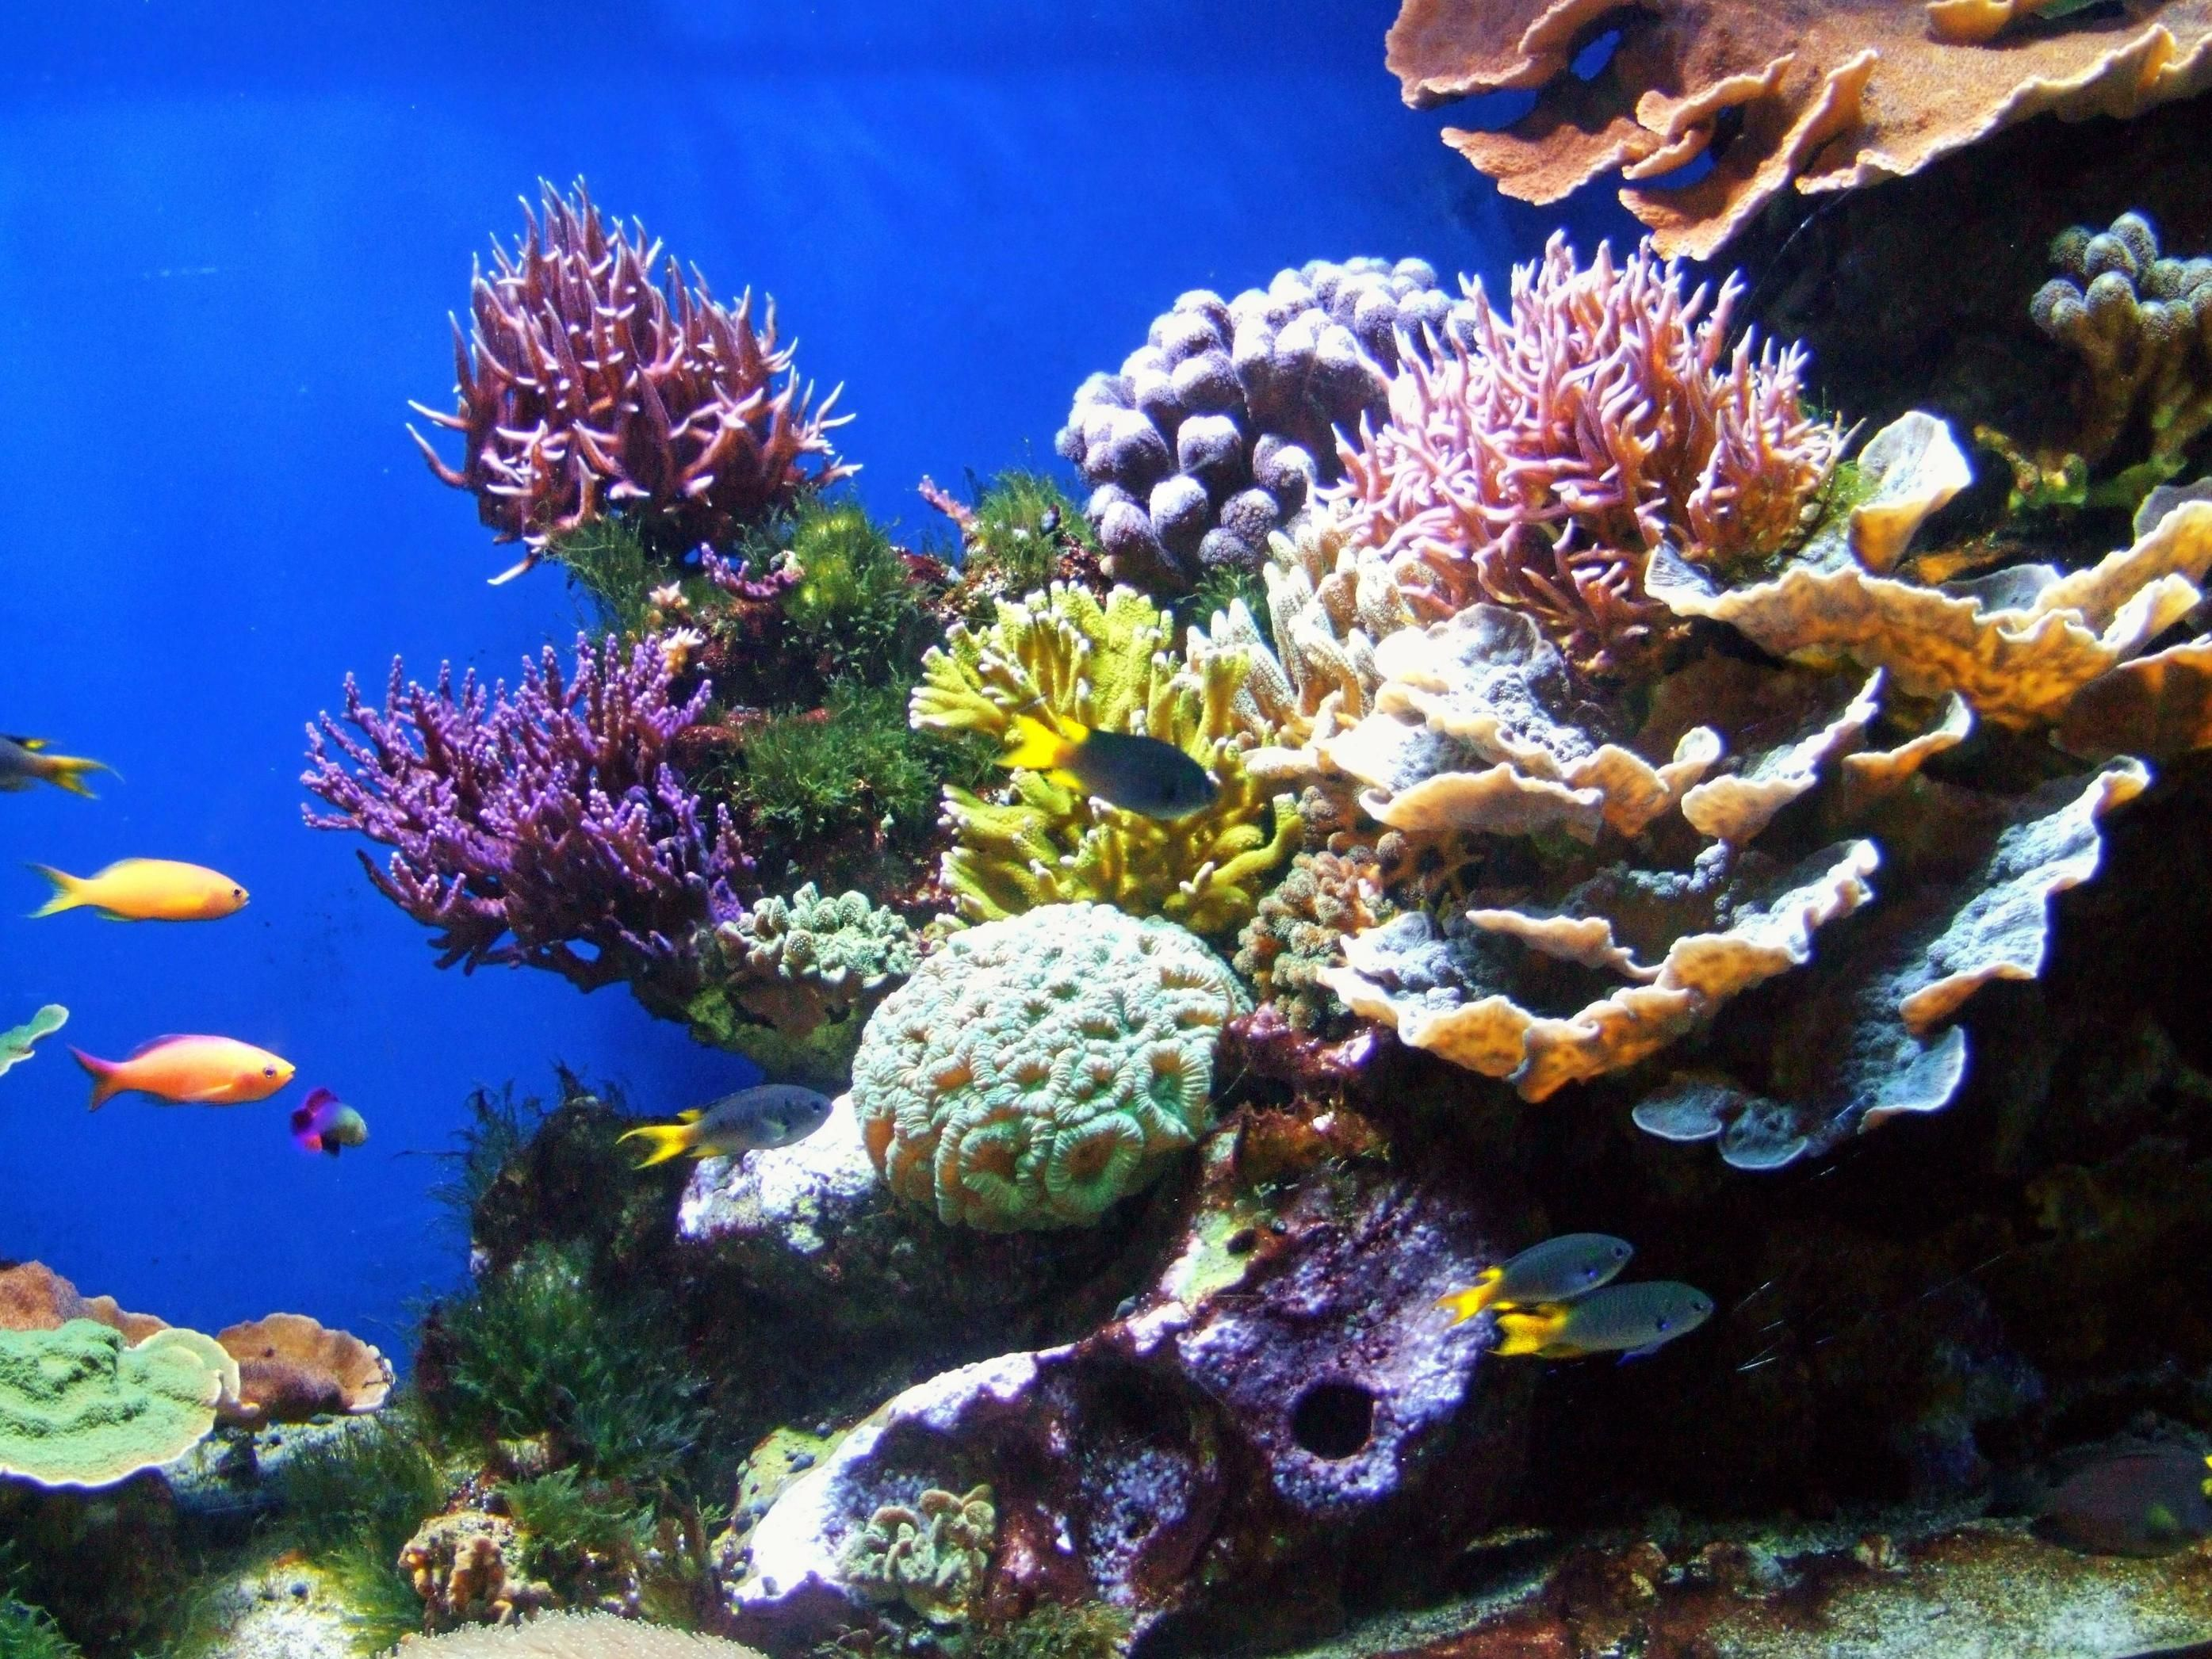 Coral Reef Wallpaper Hd | HD Wallpapers | Pinterest ...